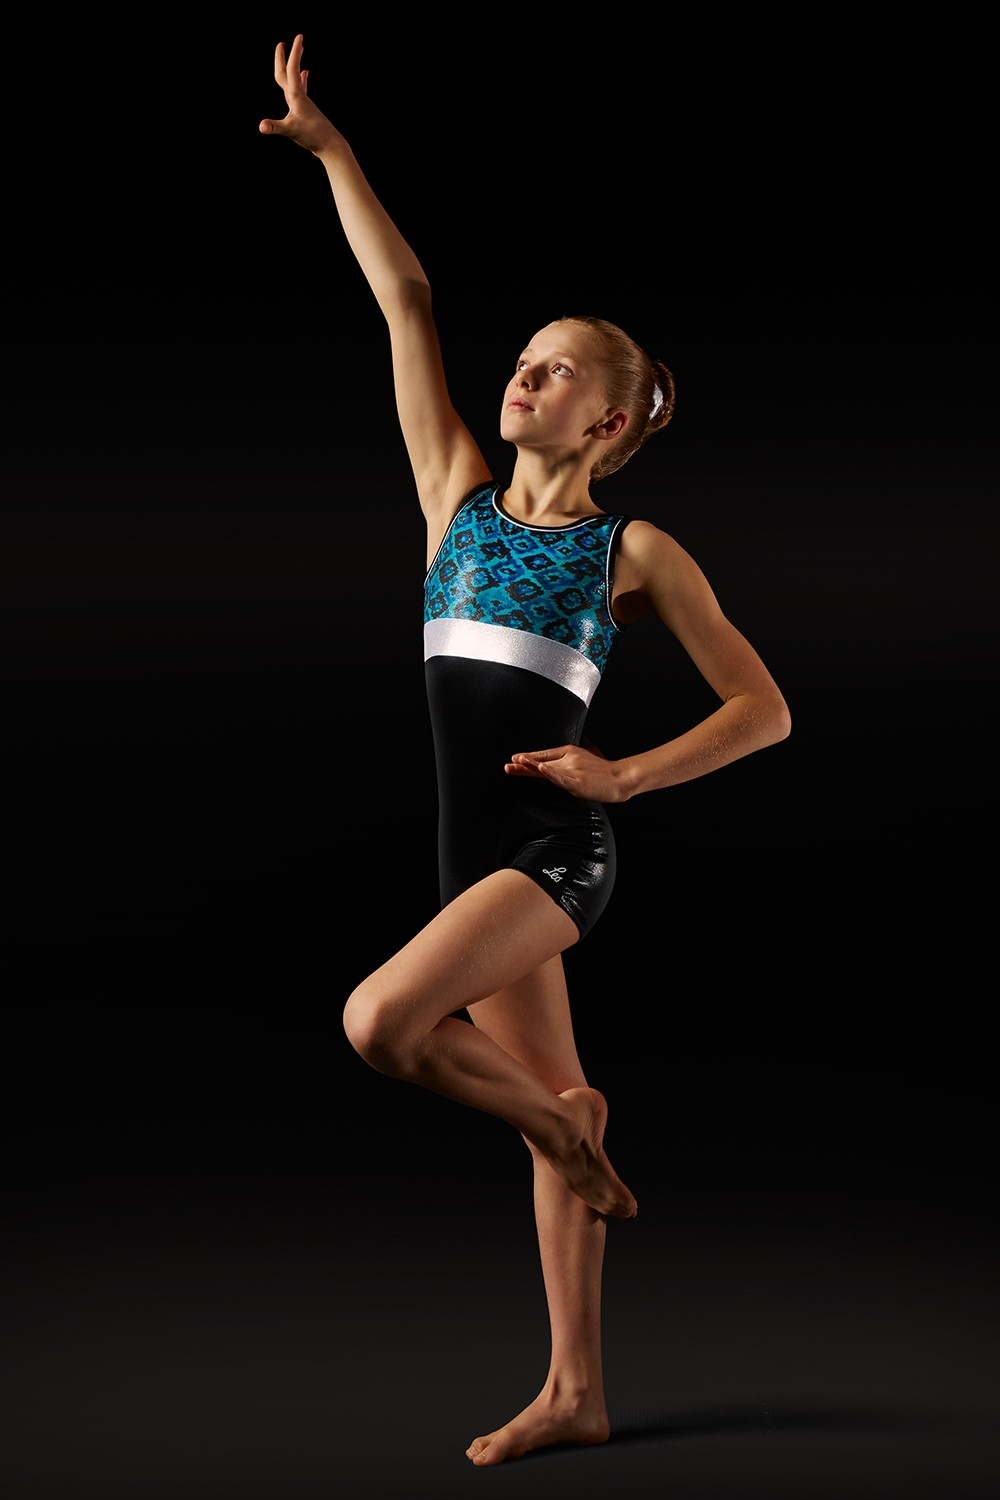 Aztec Ganzanzug Women's Gymnastics Unitards